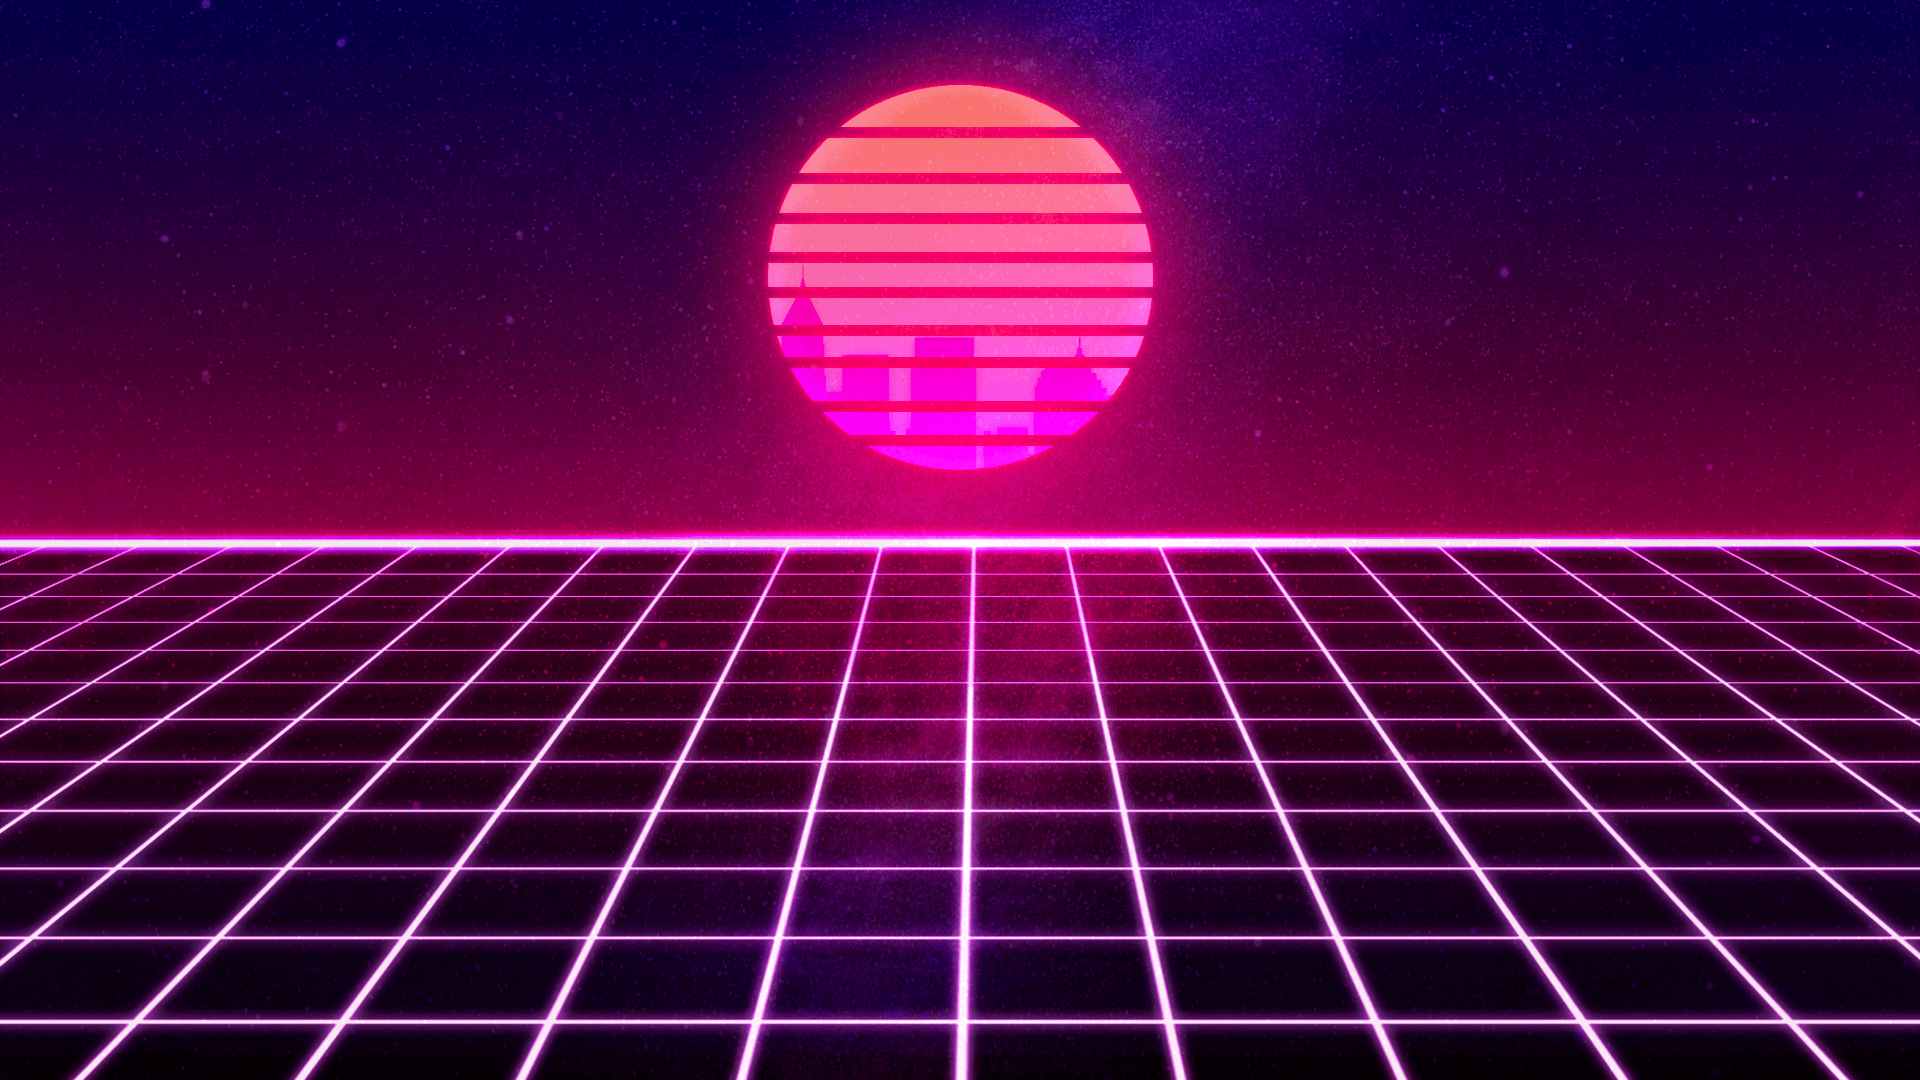 80 S Wallpapers Top Free 80 S Backgrounds Wallpaperaccess